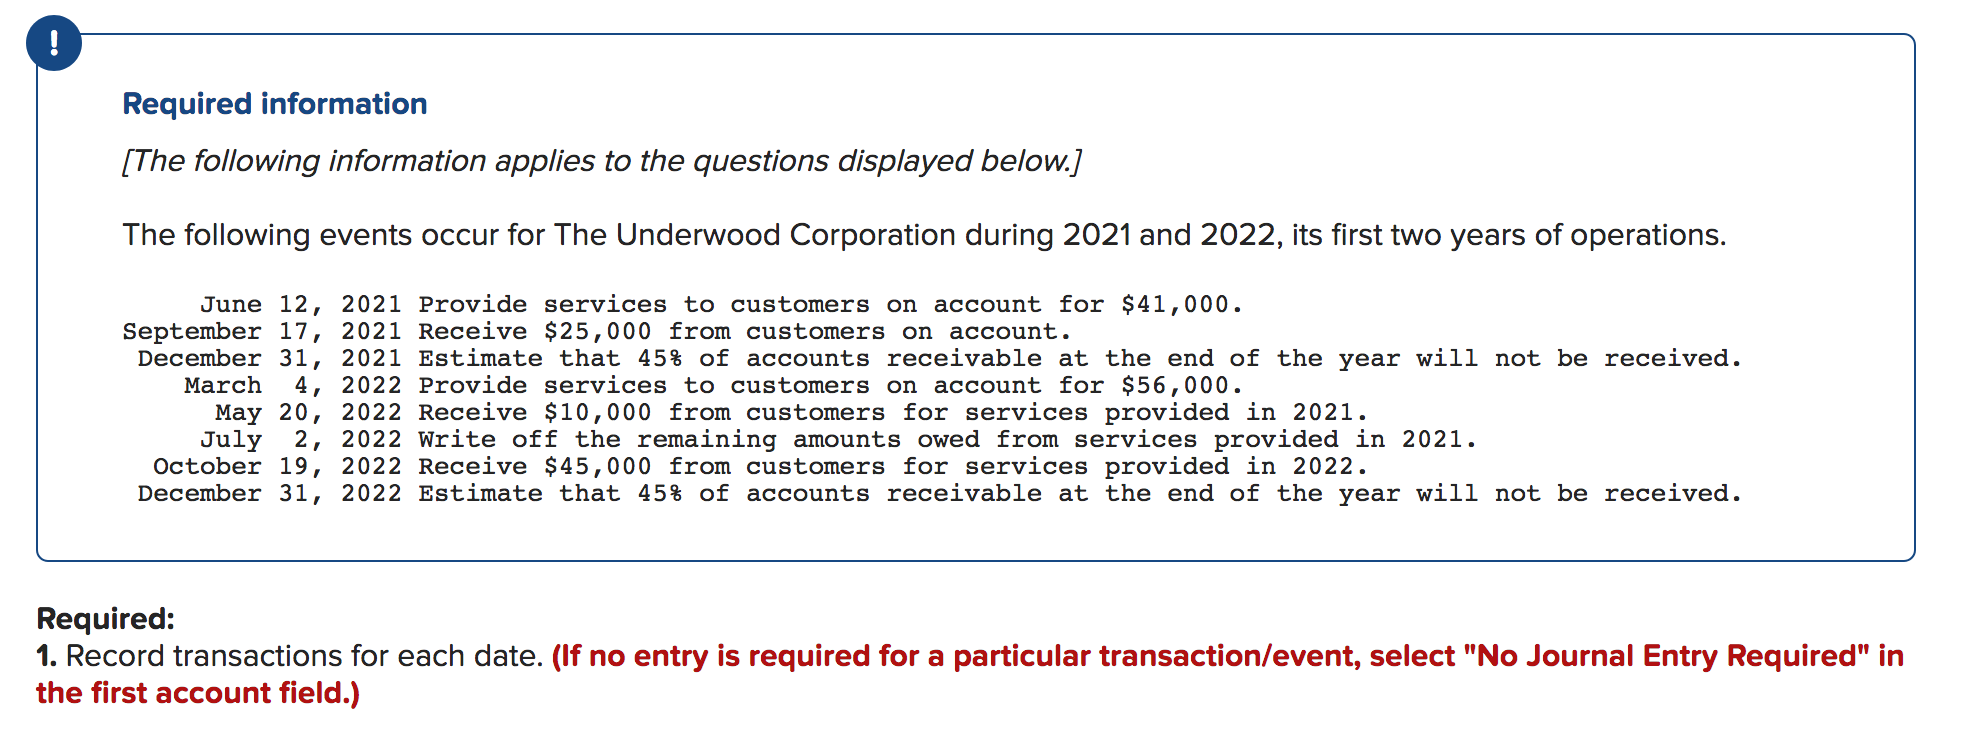 "! Required information [The following information applies to the questions displayed below.] The following events occur for The Underwood Corporation during 2021 and 2022, its first two years of operations. June 12, 2021 Provide services to customers on account for $41,000. September 17, 2021 Receive $25,000 from customers on account. December 31, 2021 Estimate that 45% of accounts receivable at the end of the year will not be received. March 4, 2022 Provide services to customers on account for $56,000 May 20, 2022 Receive $10,000 from customers for services provided in 2021 July 2, 2022 Write off the remaining amounts owed from services provided in 2021. October 19, 2022 Receive $45,000 from customers for services provided in 2022. December 31, 2022 Estimate that 45% of accounts receivable at the end of the year will not be received. Required: 1. Record transactions for each date. (If no entry is required for a particular transaction/event, select ""No Journal Entry Required"" in the first account field.)"